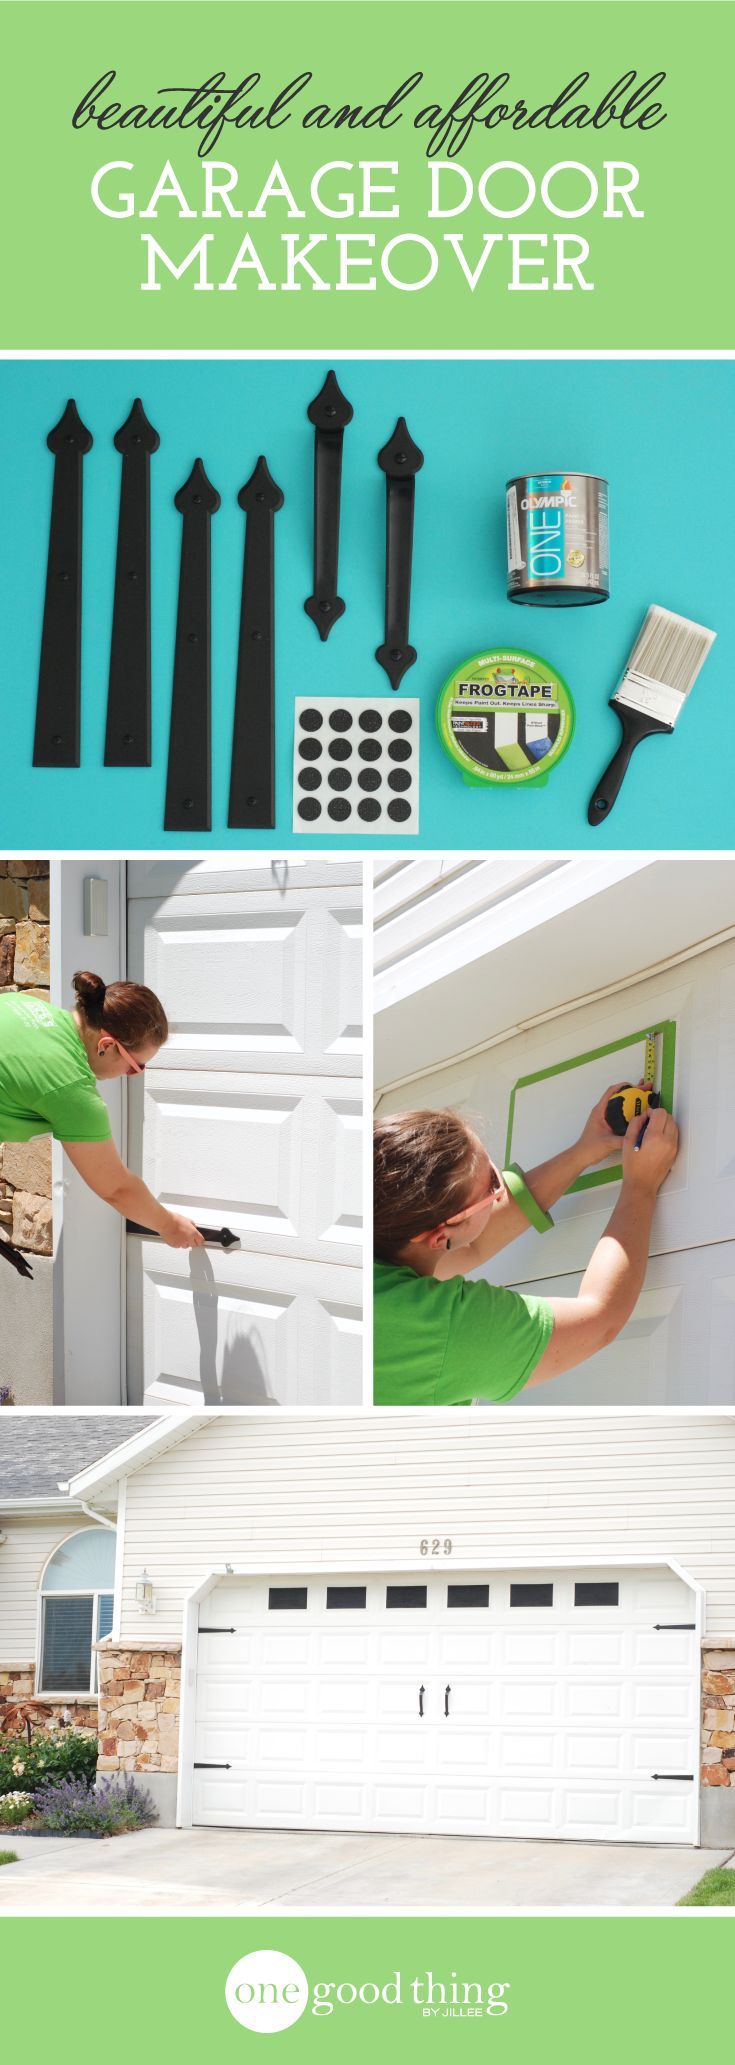 A Beautiful and Surprisingly Affordable Garage Door Makeover